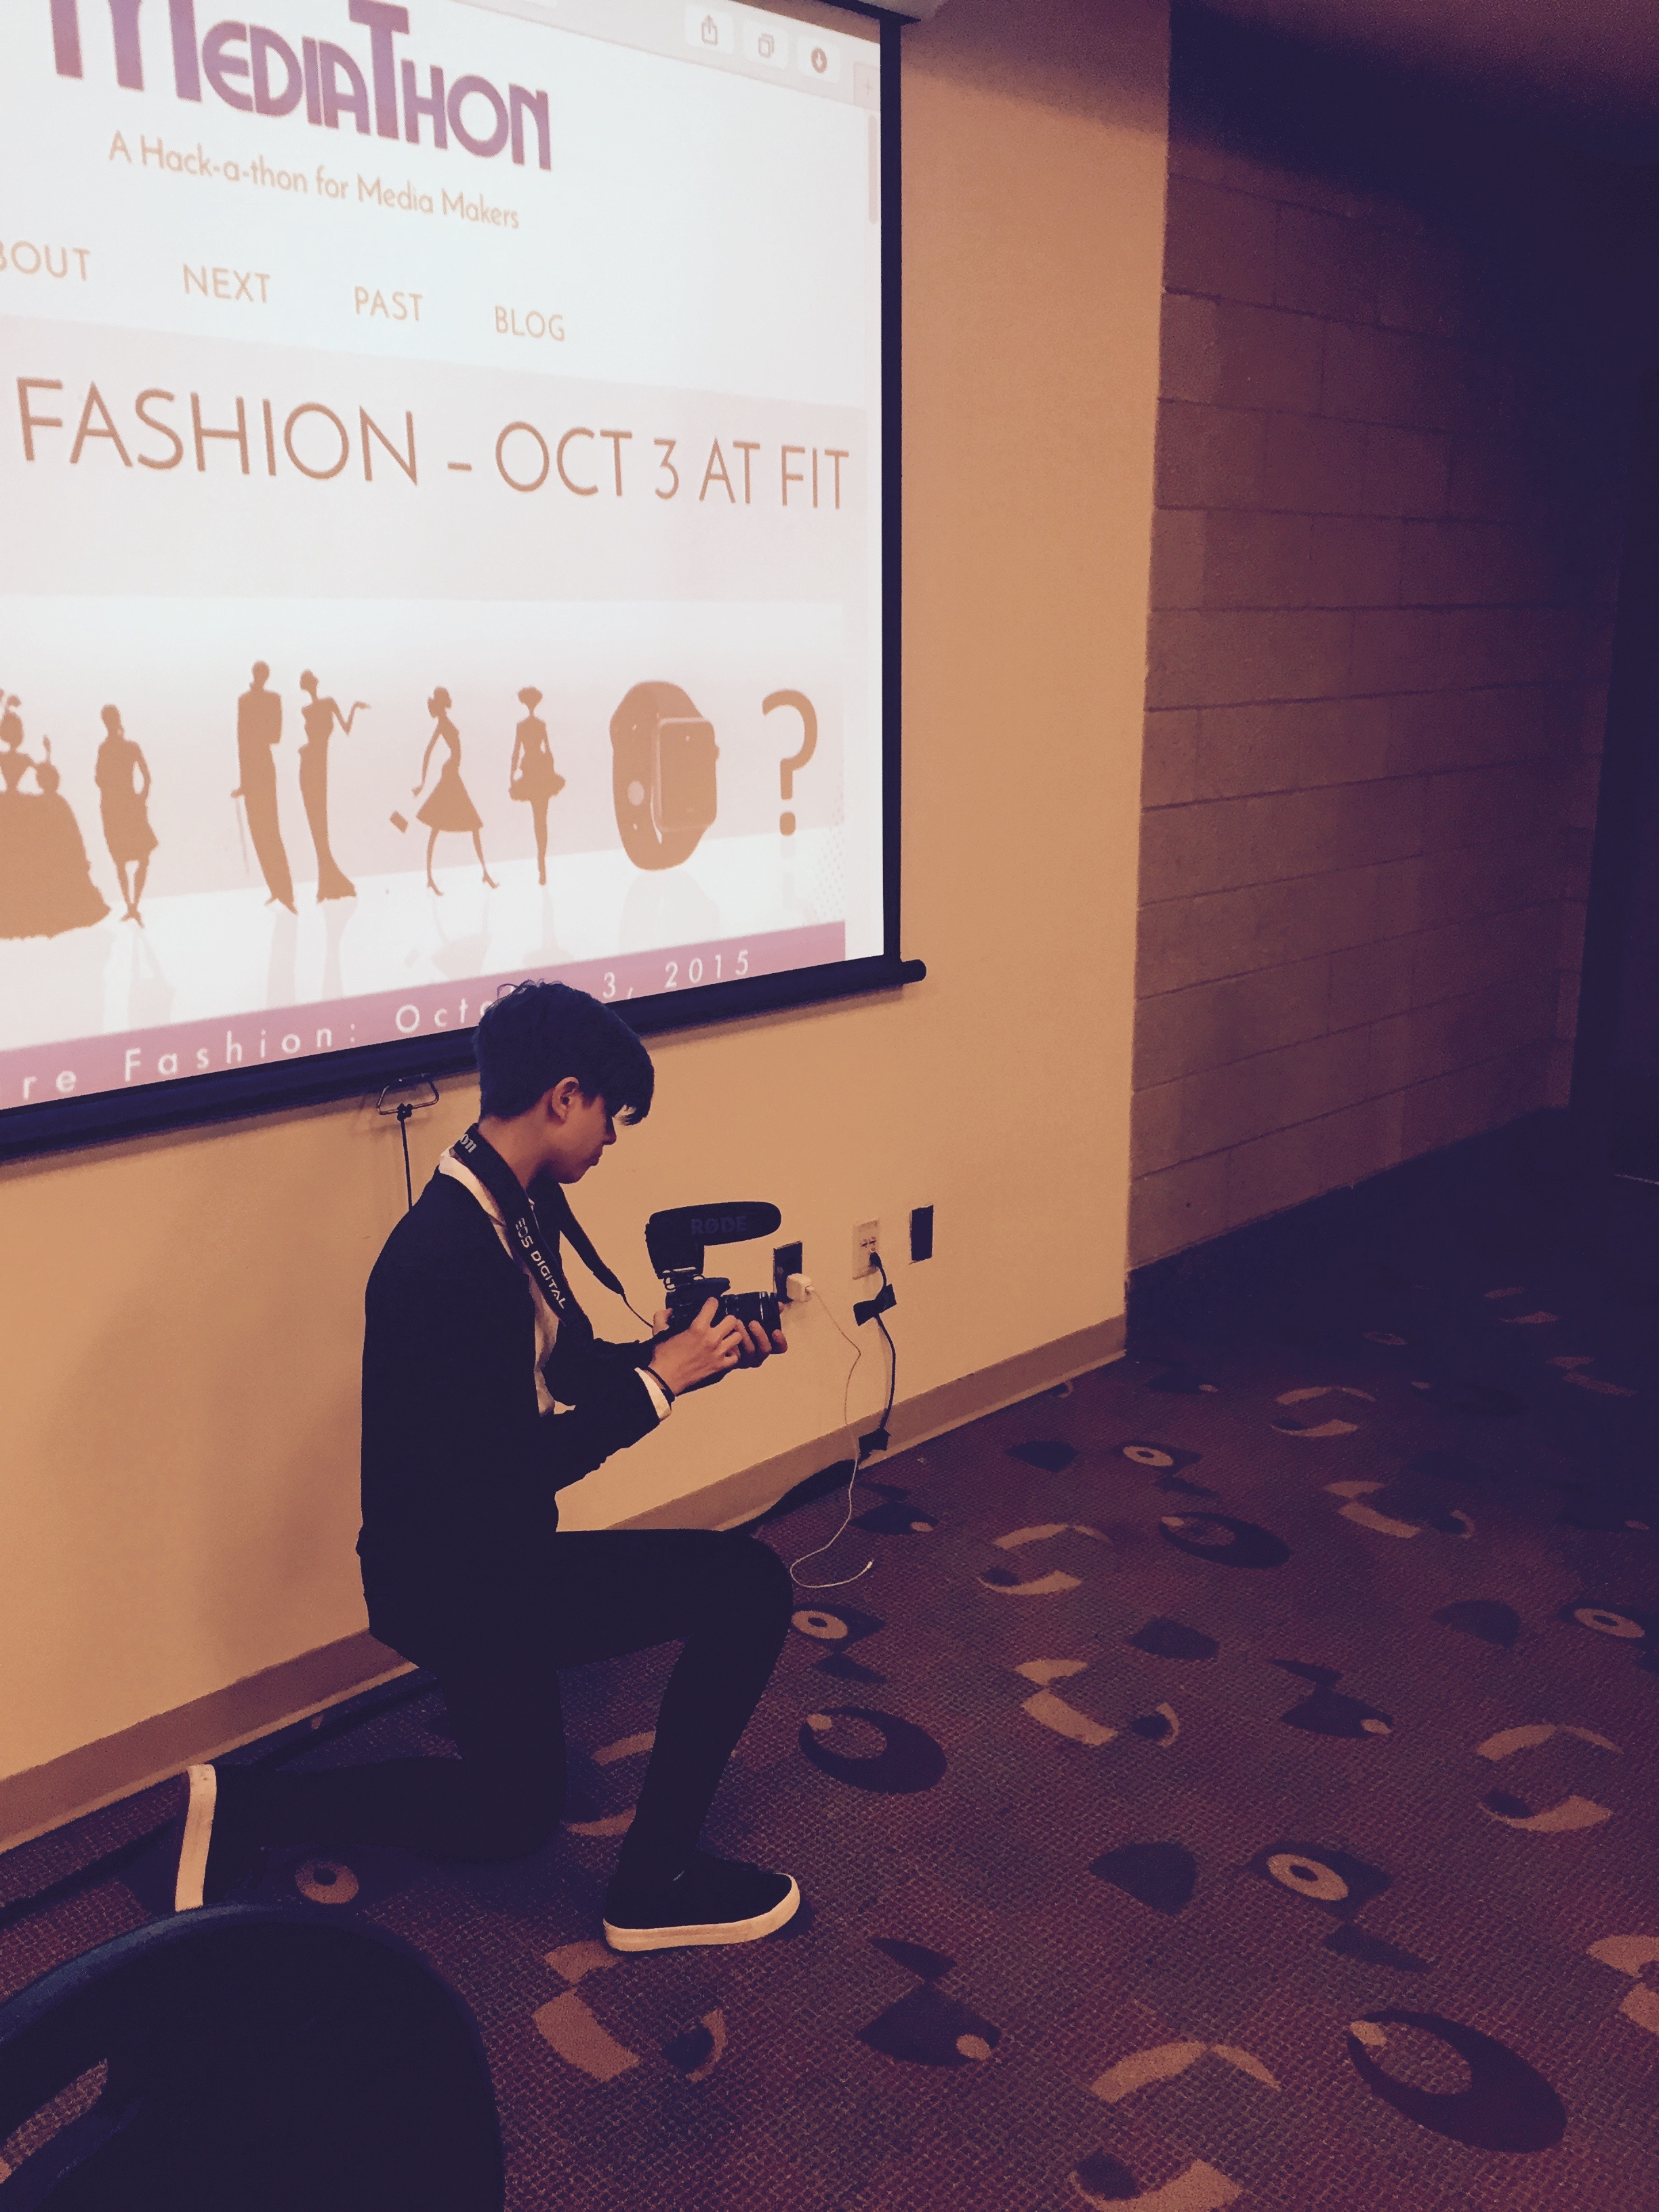 In Action @ Future Fashion